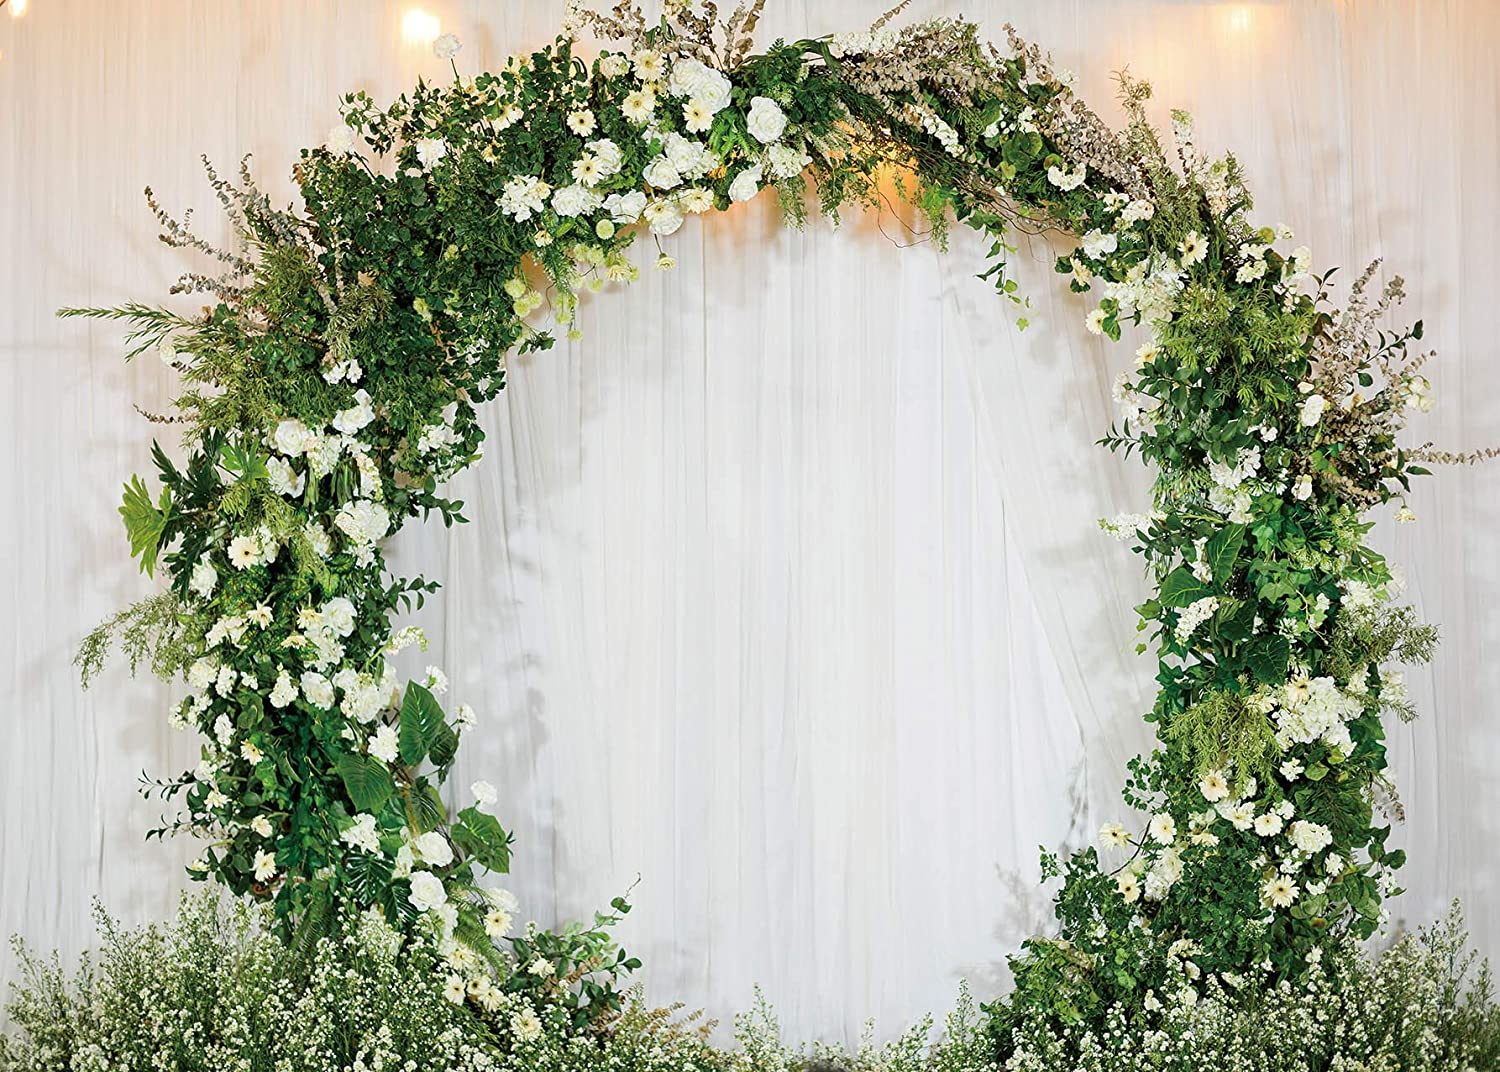 Daniu Wedding Backdrop Outdoors Flower Wedding Floral Arch Romantic Decor  Photo Background for Party Photo Shoots Adult Lovers Studio Props